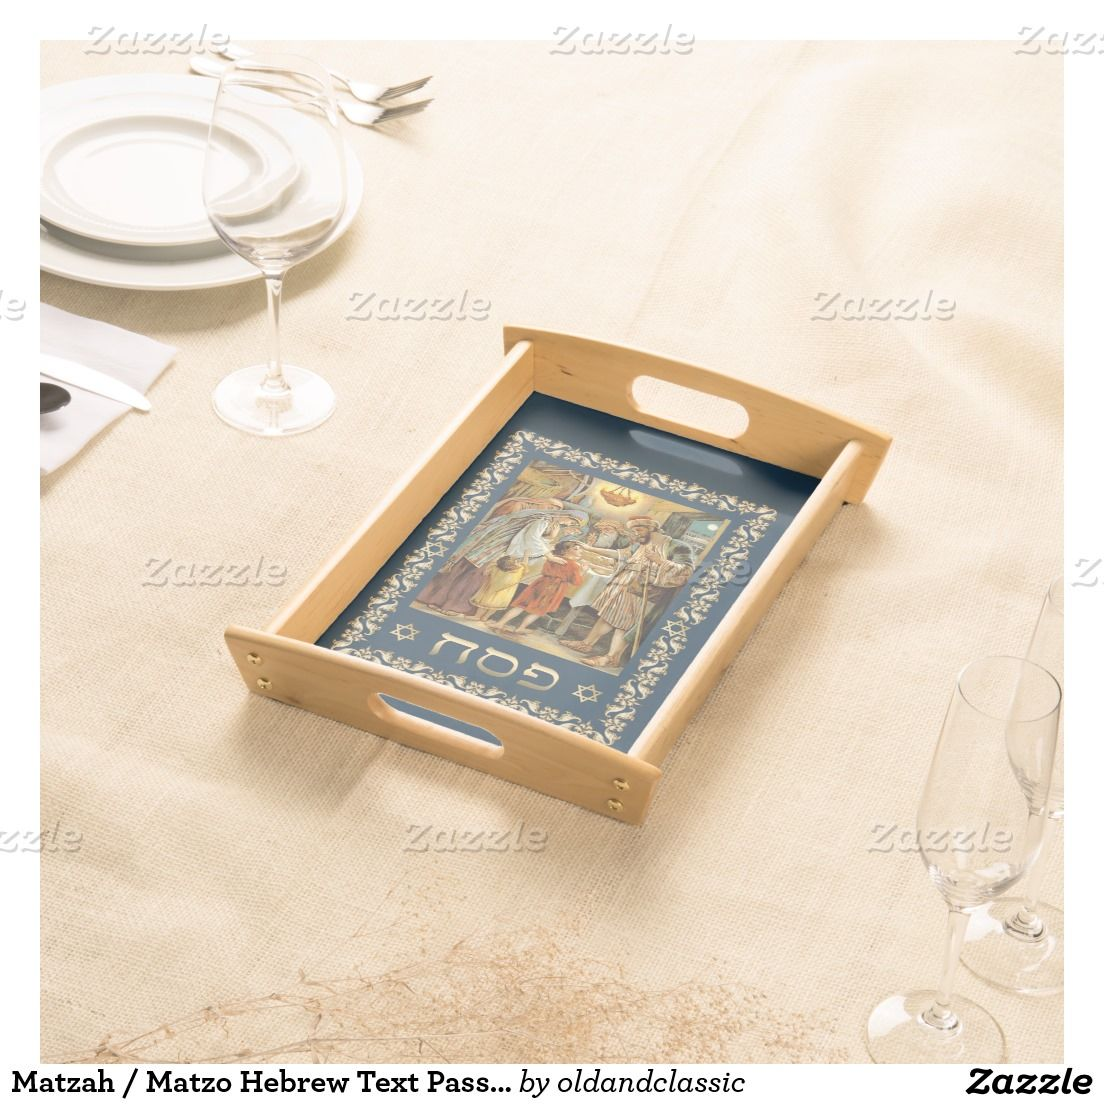 Matzah Matzo Hebrew Text Fine Art Passover Serving Tray The